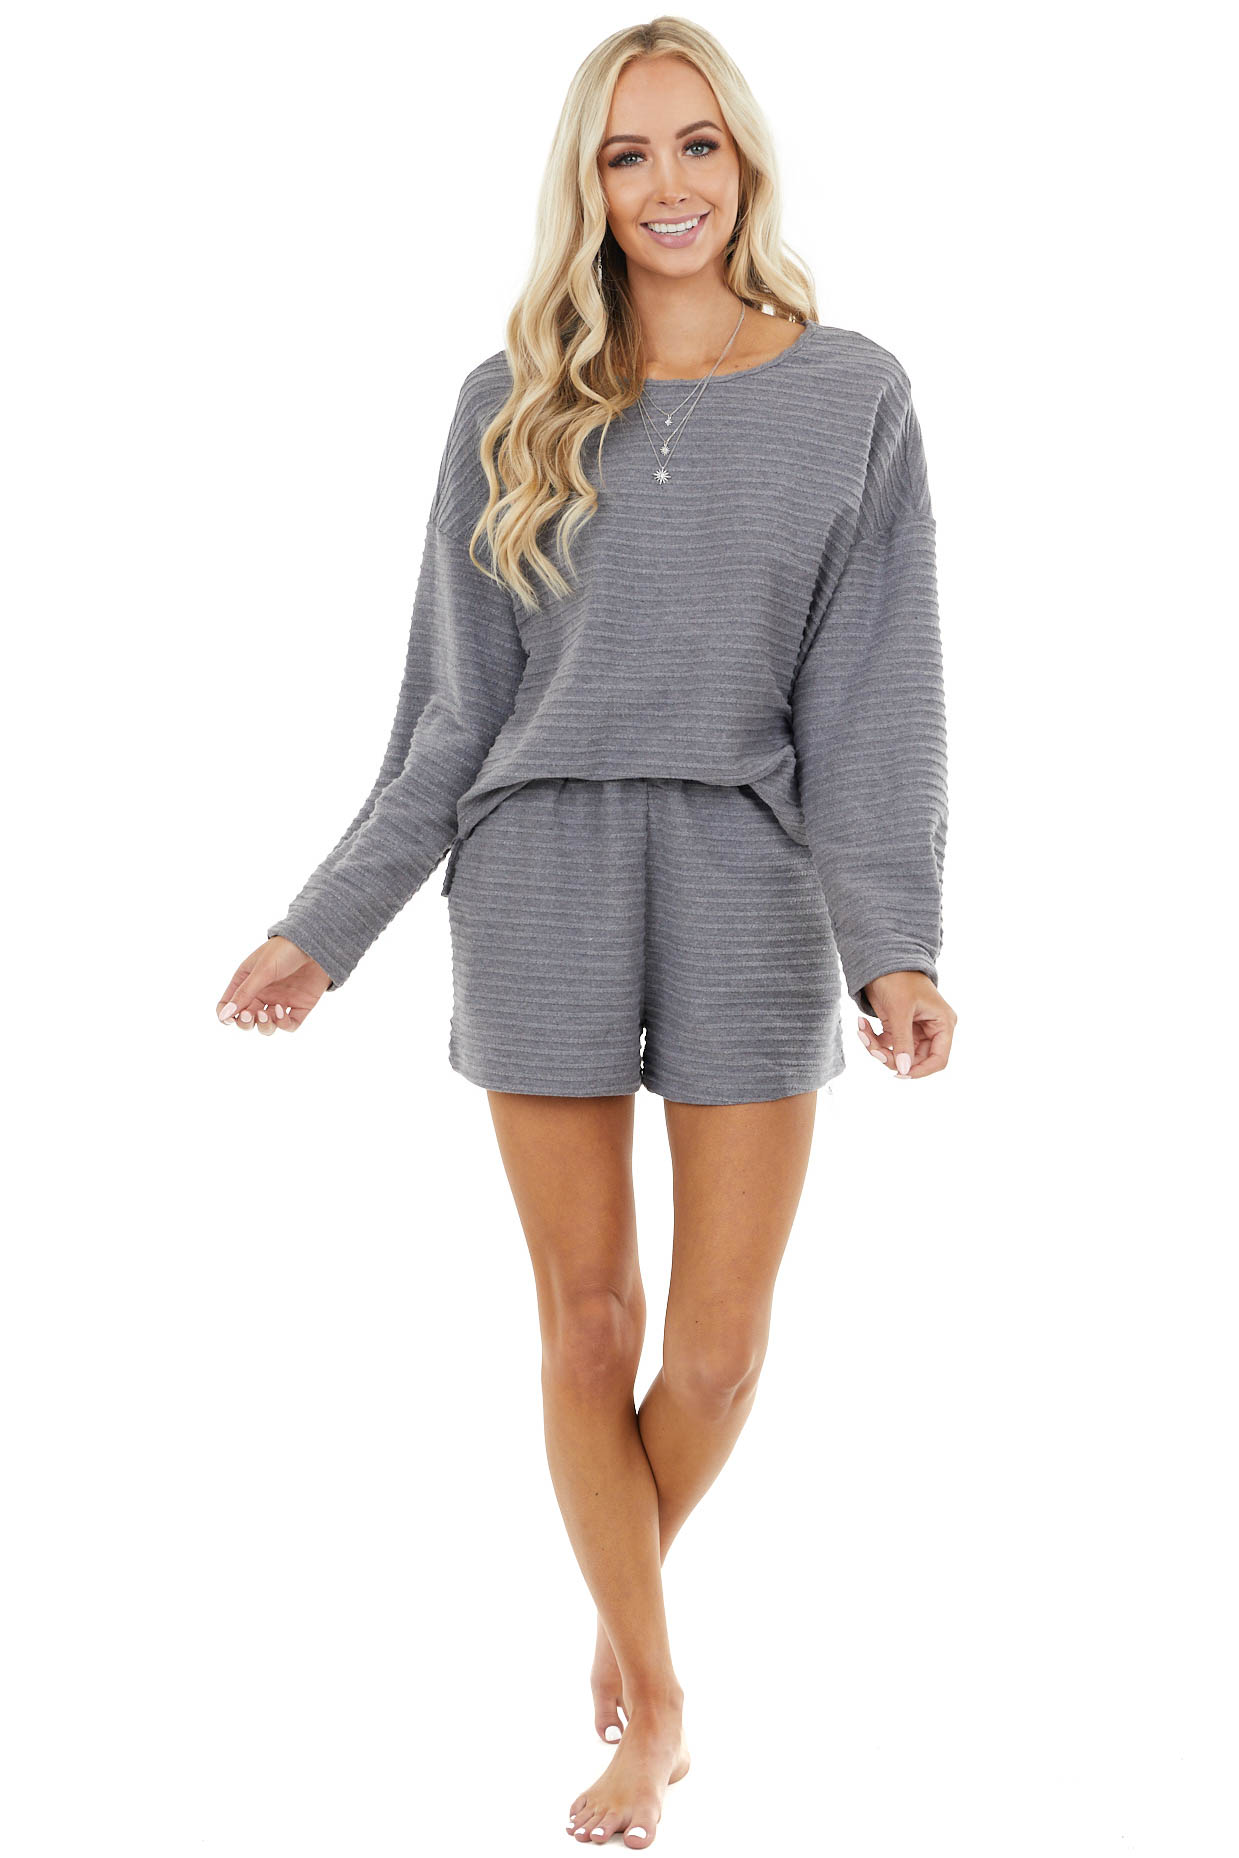 Charcoal Textured Long Sleeve Top and Shorts Lounge Set